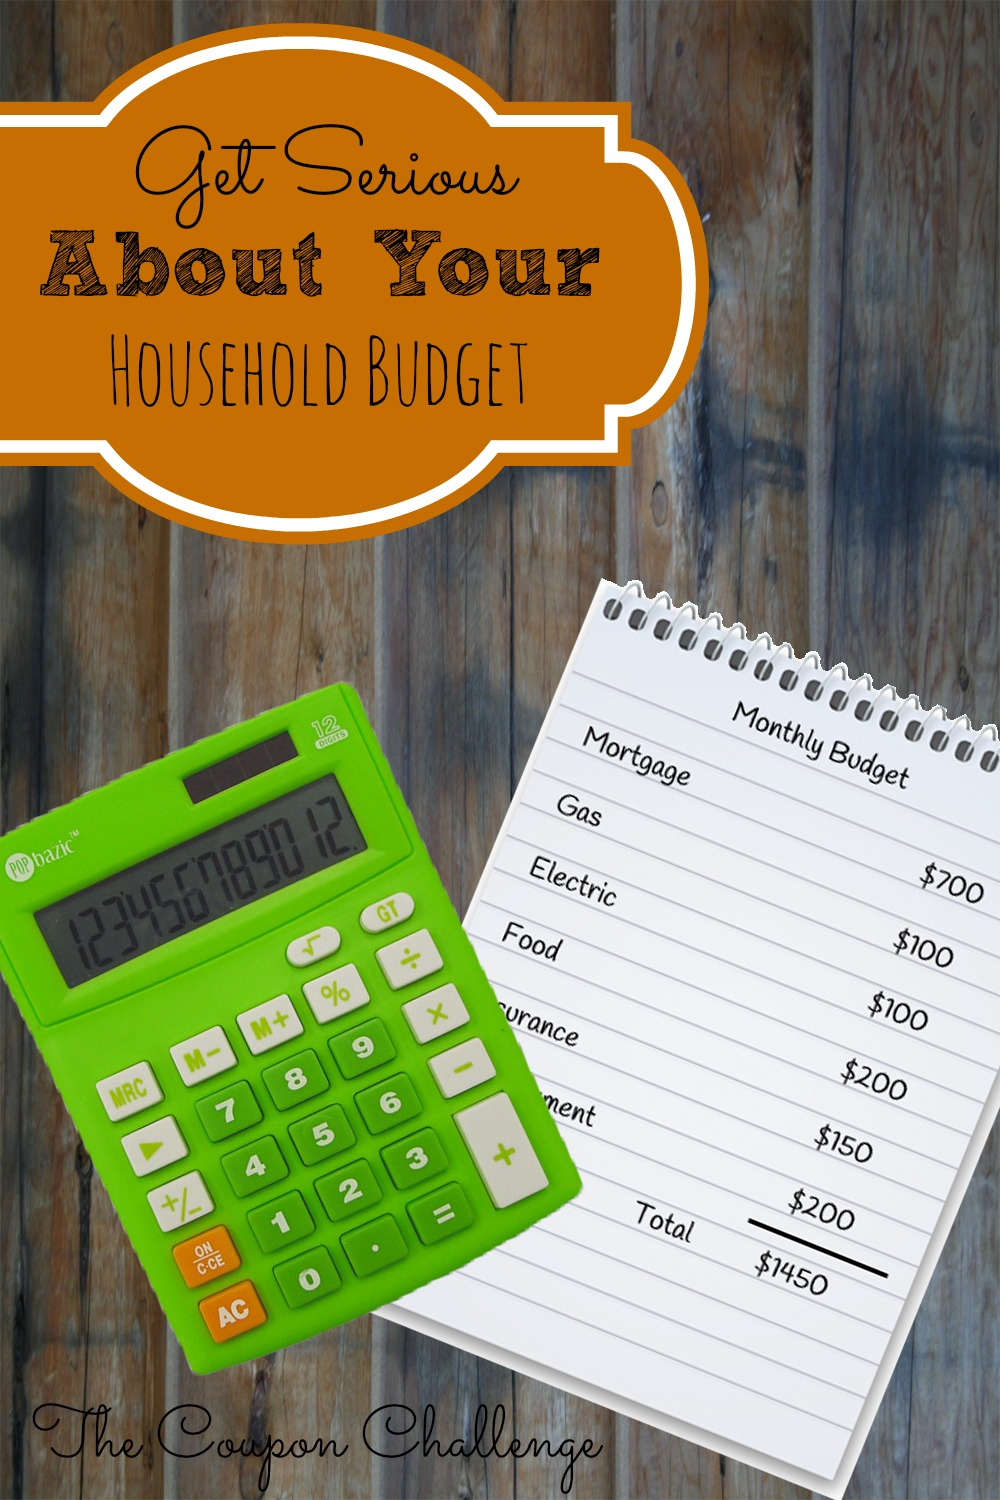 Get-Serious-About-Your-Household-Budget